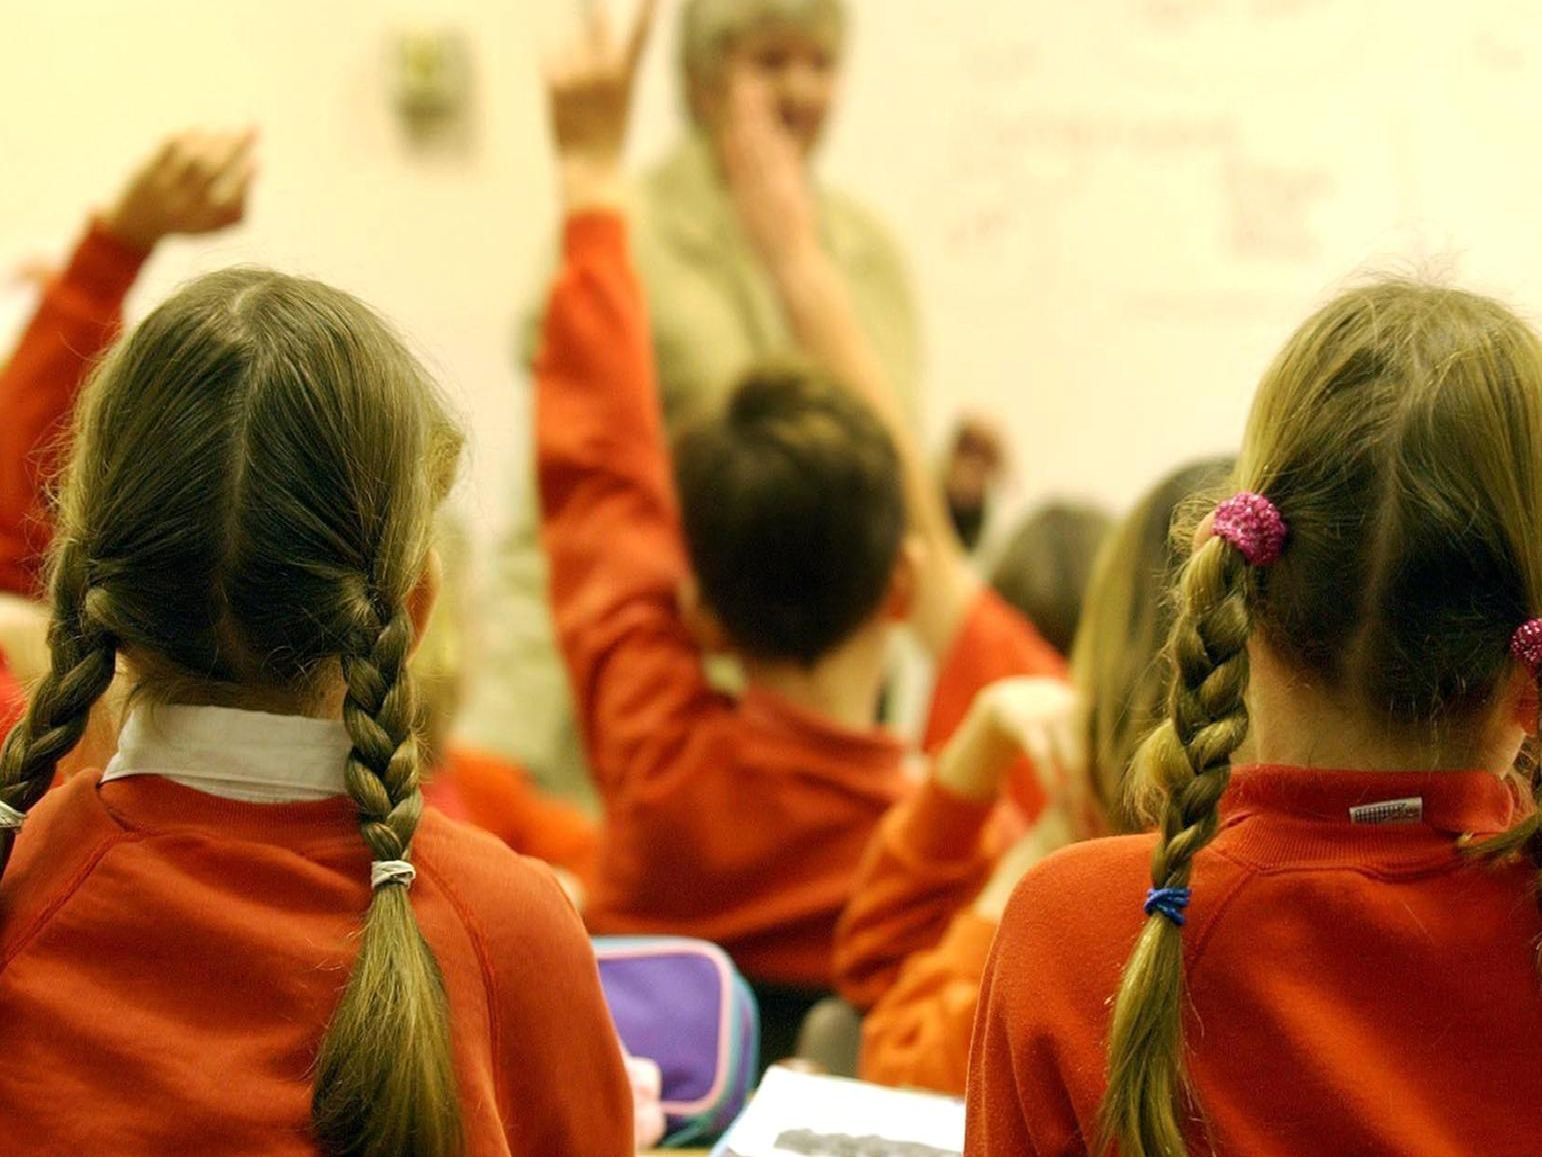 Outstanding schools in Calderdale, as rated by Ofsted